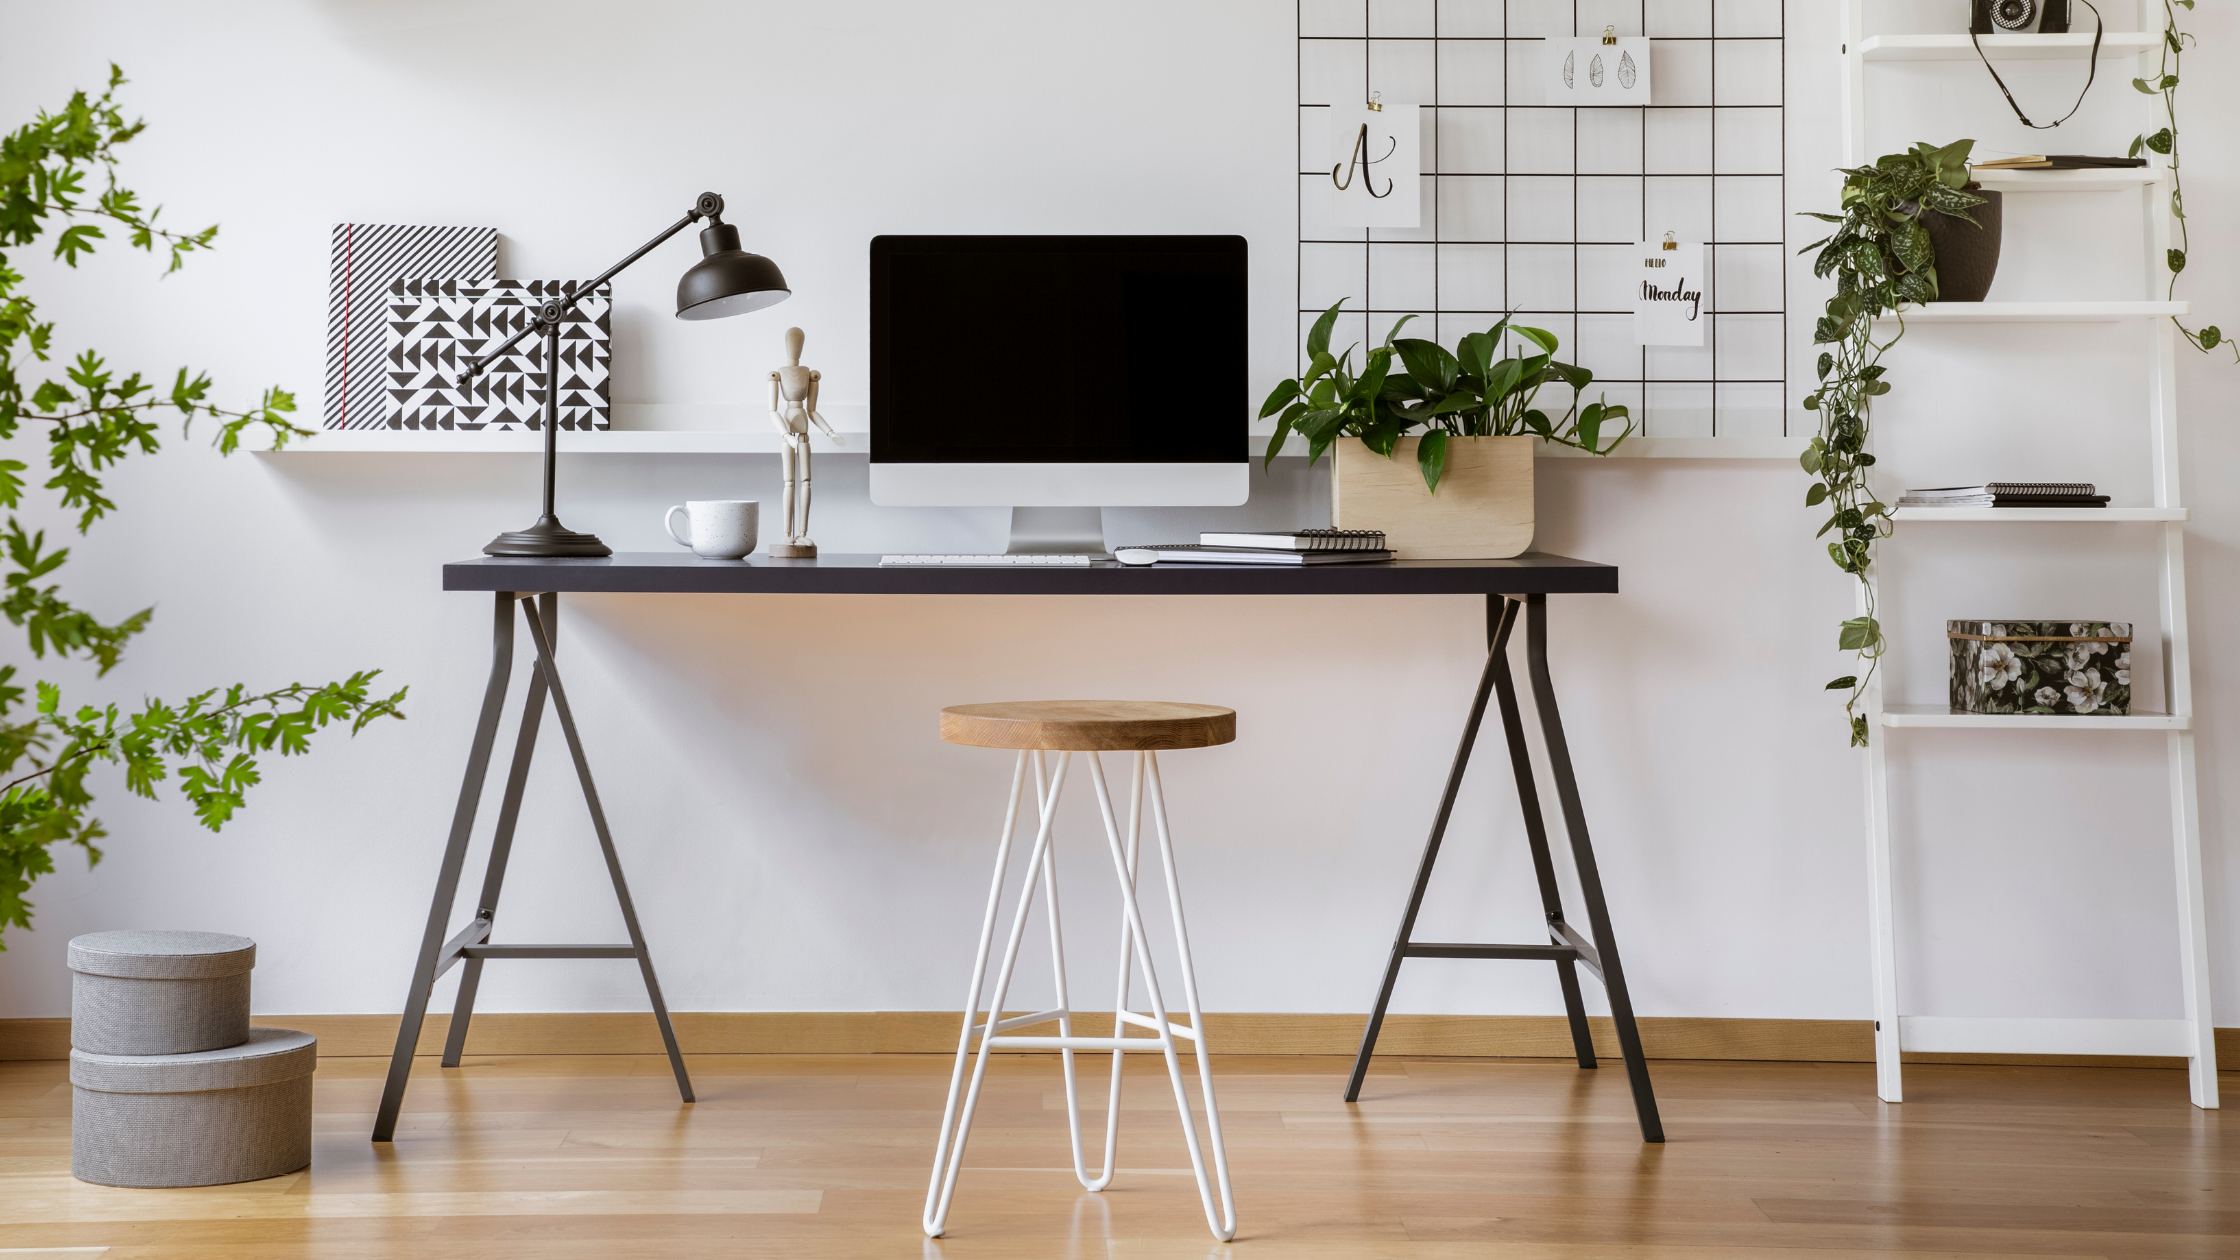 Image of trendy desk space with stool.